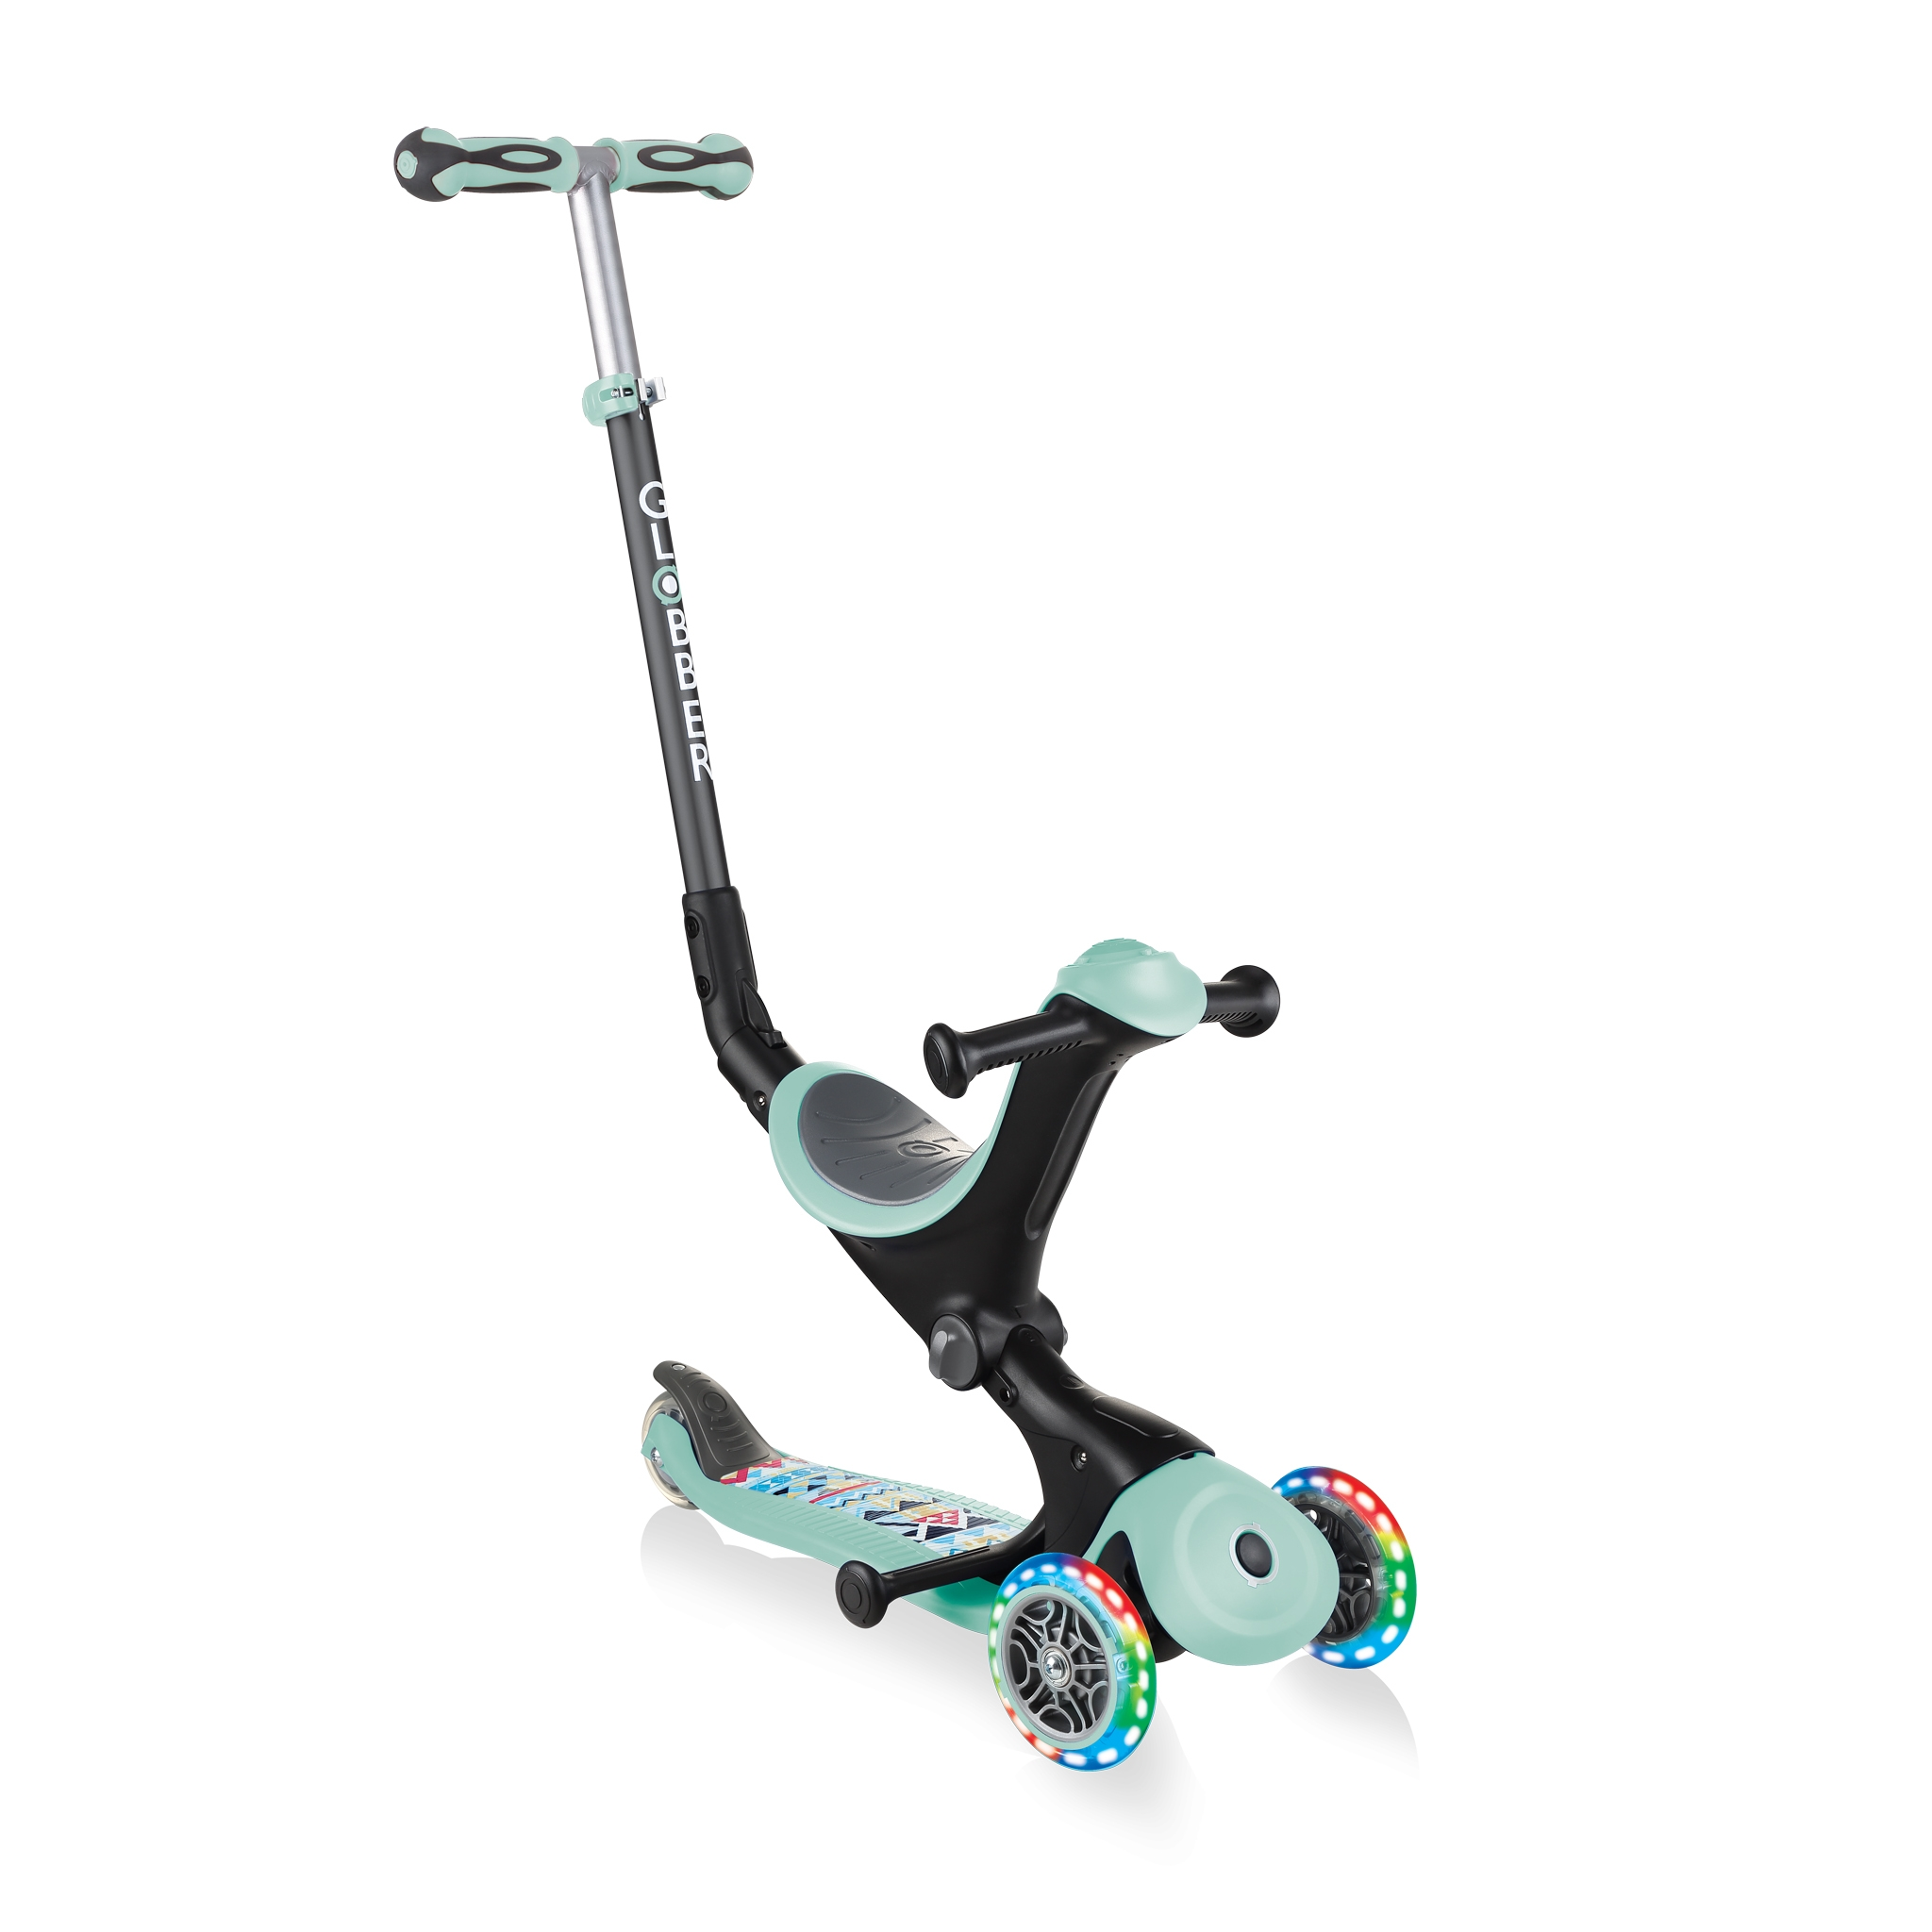 Scooter-with-seat-for-toddlers-Globber-GO-UP-DELUXE-FANTASY-LIGHTS 0